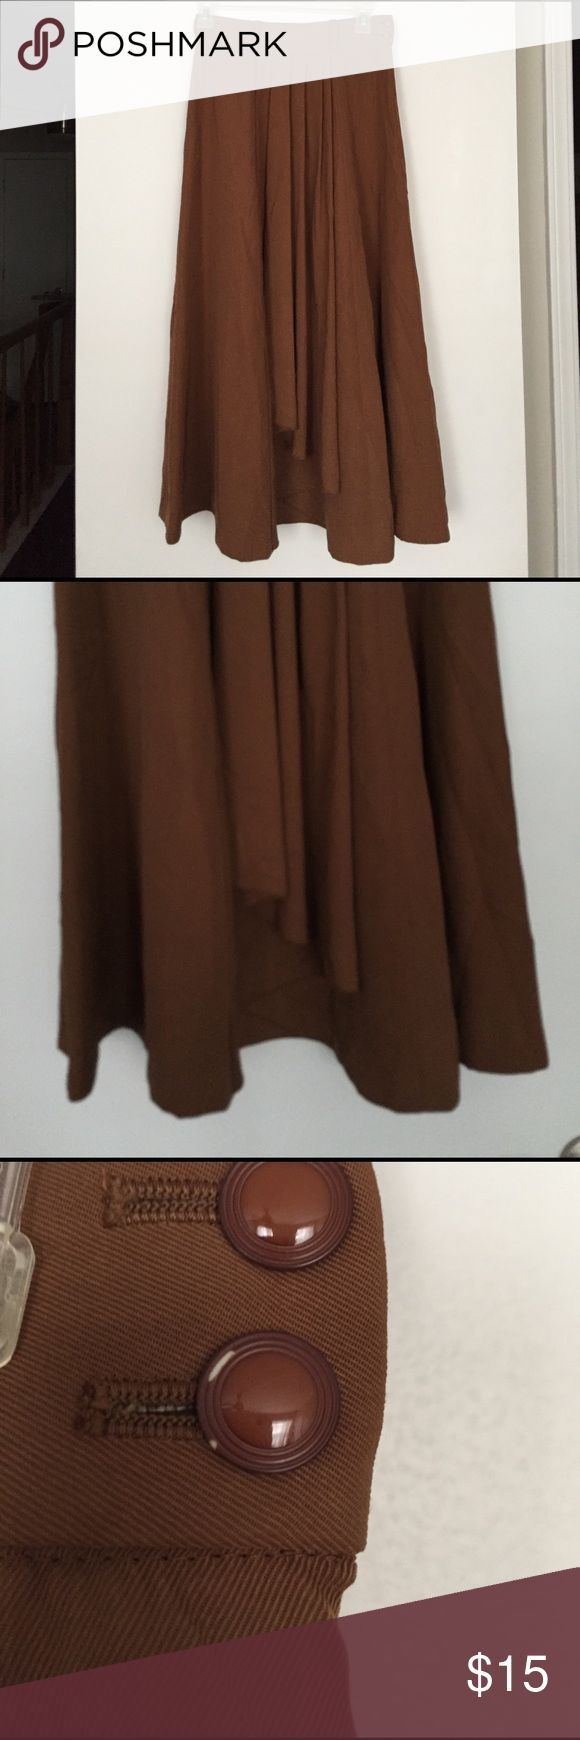 Vintage brown maxi skirt This is a nice heavy lined skirt with side zipper and vintage button closure. It has belt loops and nice drape detail. I never wore it cause I didn't have anything to go with it! No brand, got it at a vintage shop. Skirts